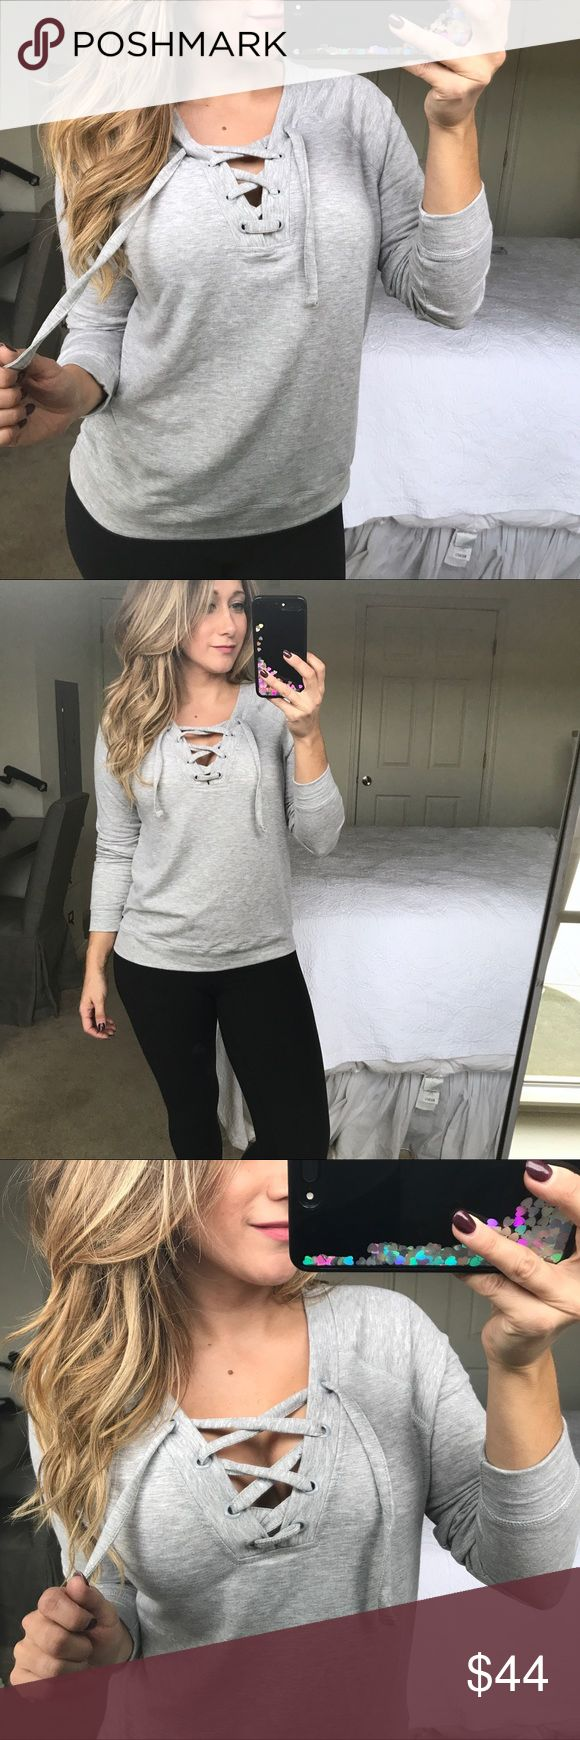 "Lace up gray sweatshirt top casual athletic wear ✨Modeling info: I'm 34D / 5'5"" / 150 lbs (Yes, I have CURVES!)   •gray lace up fitted sweatshirt (except much softer and nicer material than a traditional sweatshirt!)  •when you don't want to try to hard but still look cute!  Wear to yoga, to run errands, or with boots for a coffee date!  •modeling size M •fabric: 63% rayon 19% cotton 14% polyester 4% elastane •New with tags boutique item - price firm    ✨Please purchase directly through this…"